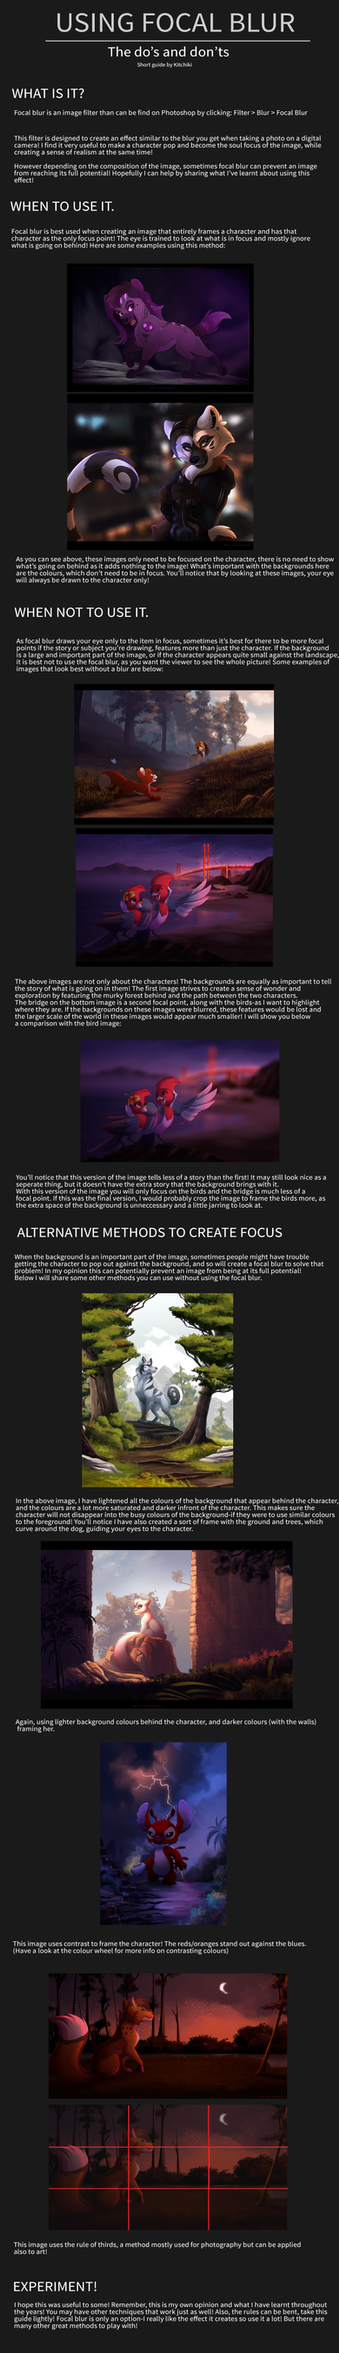 Using Focal Blur Effectively -TUTORIAL- by Kitchiki